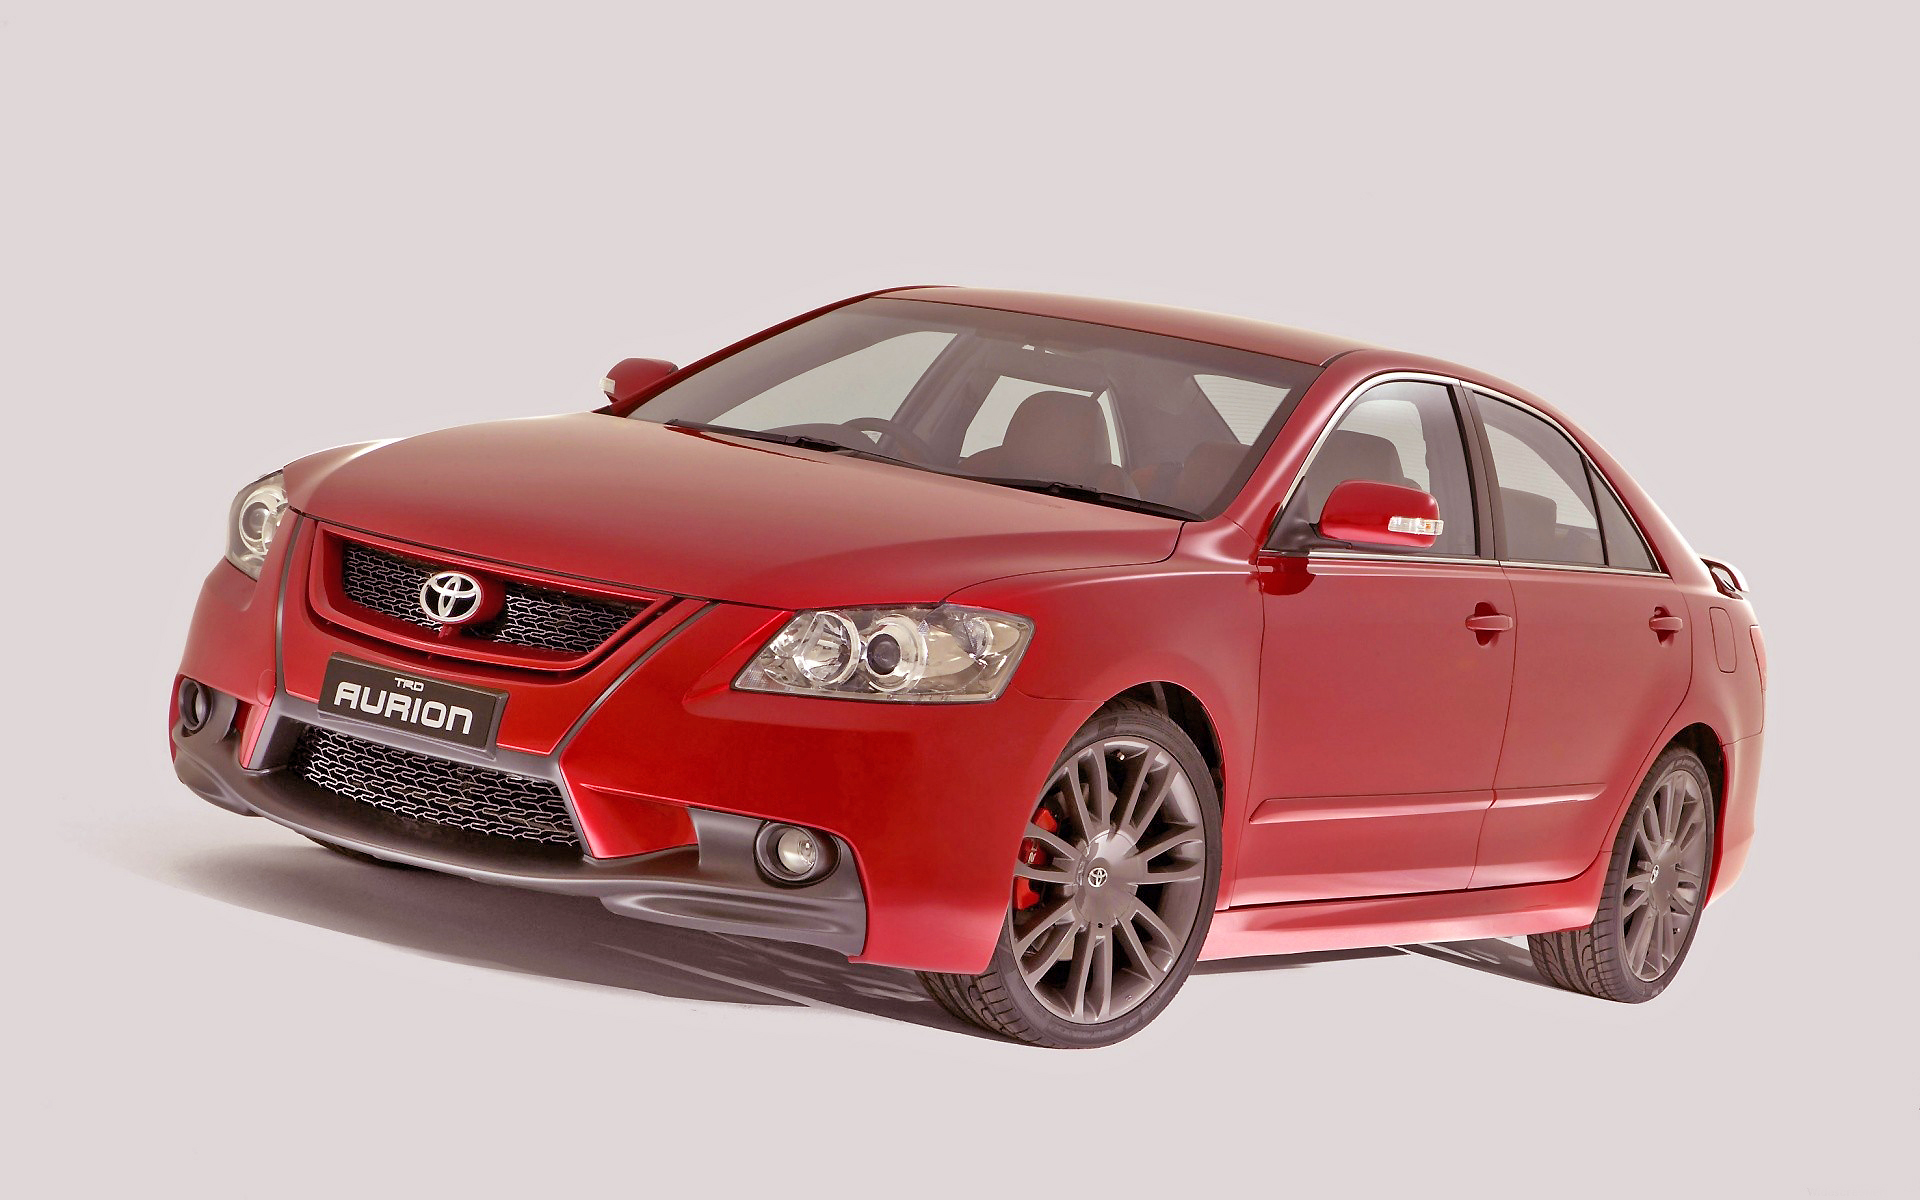 Big, sassy and powerful, the well-equipped Toyota Aurion's got it together, nicely.